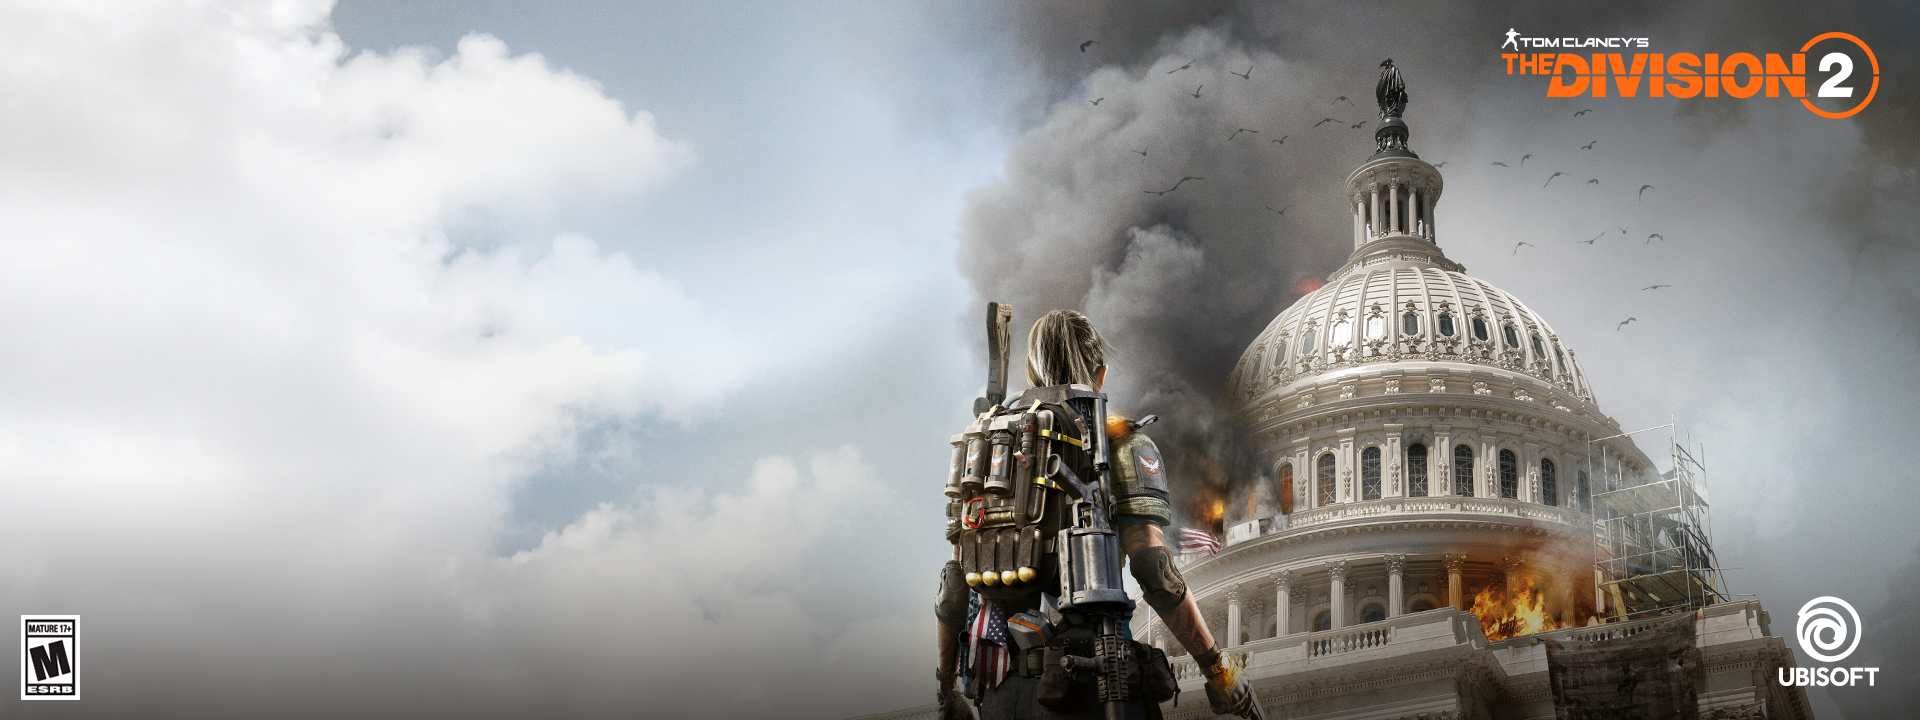 An agent looking at a burning Capitol Building in Washington D.C.